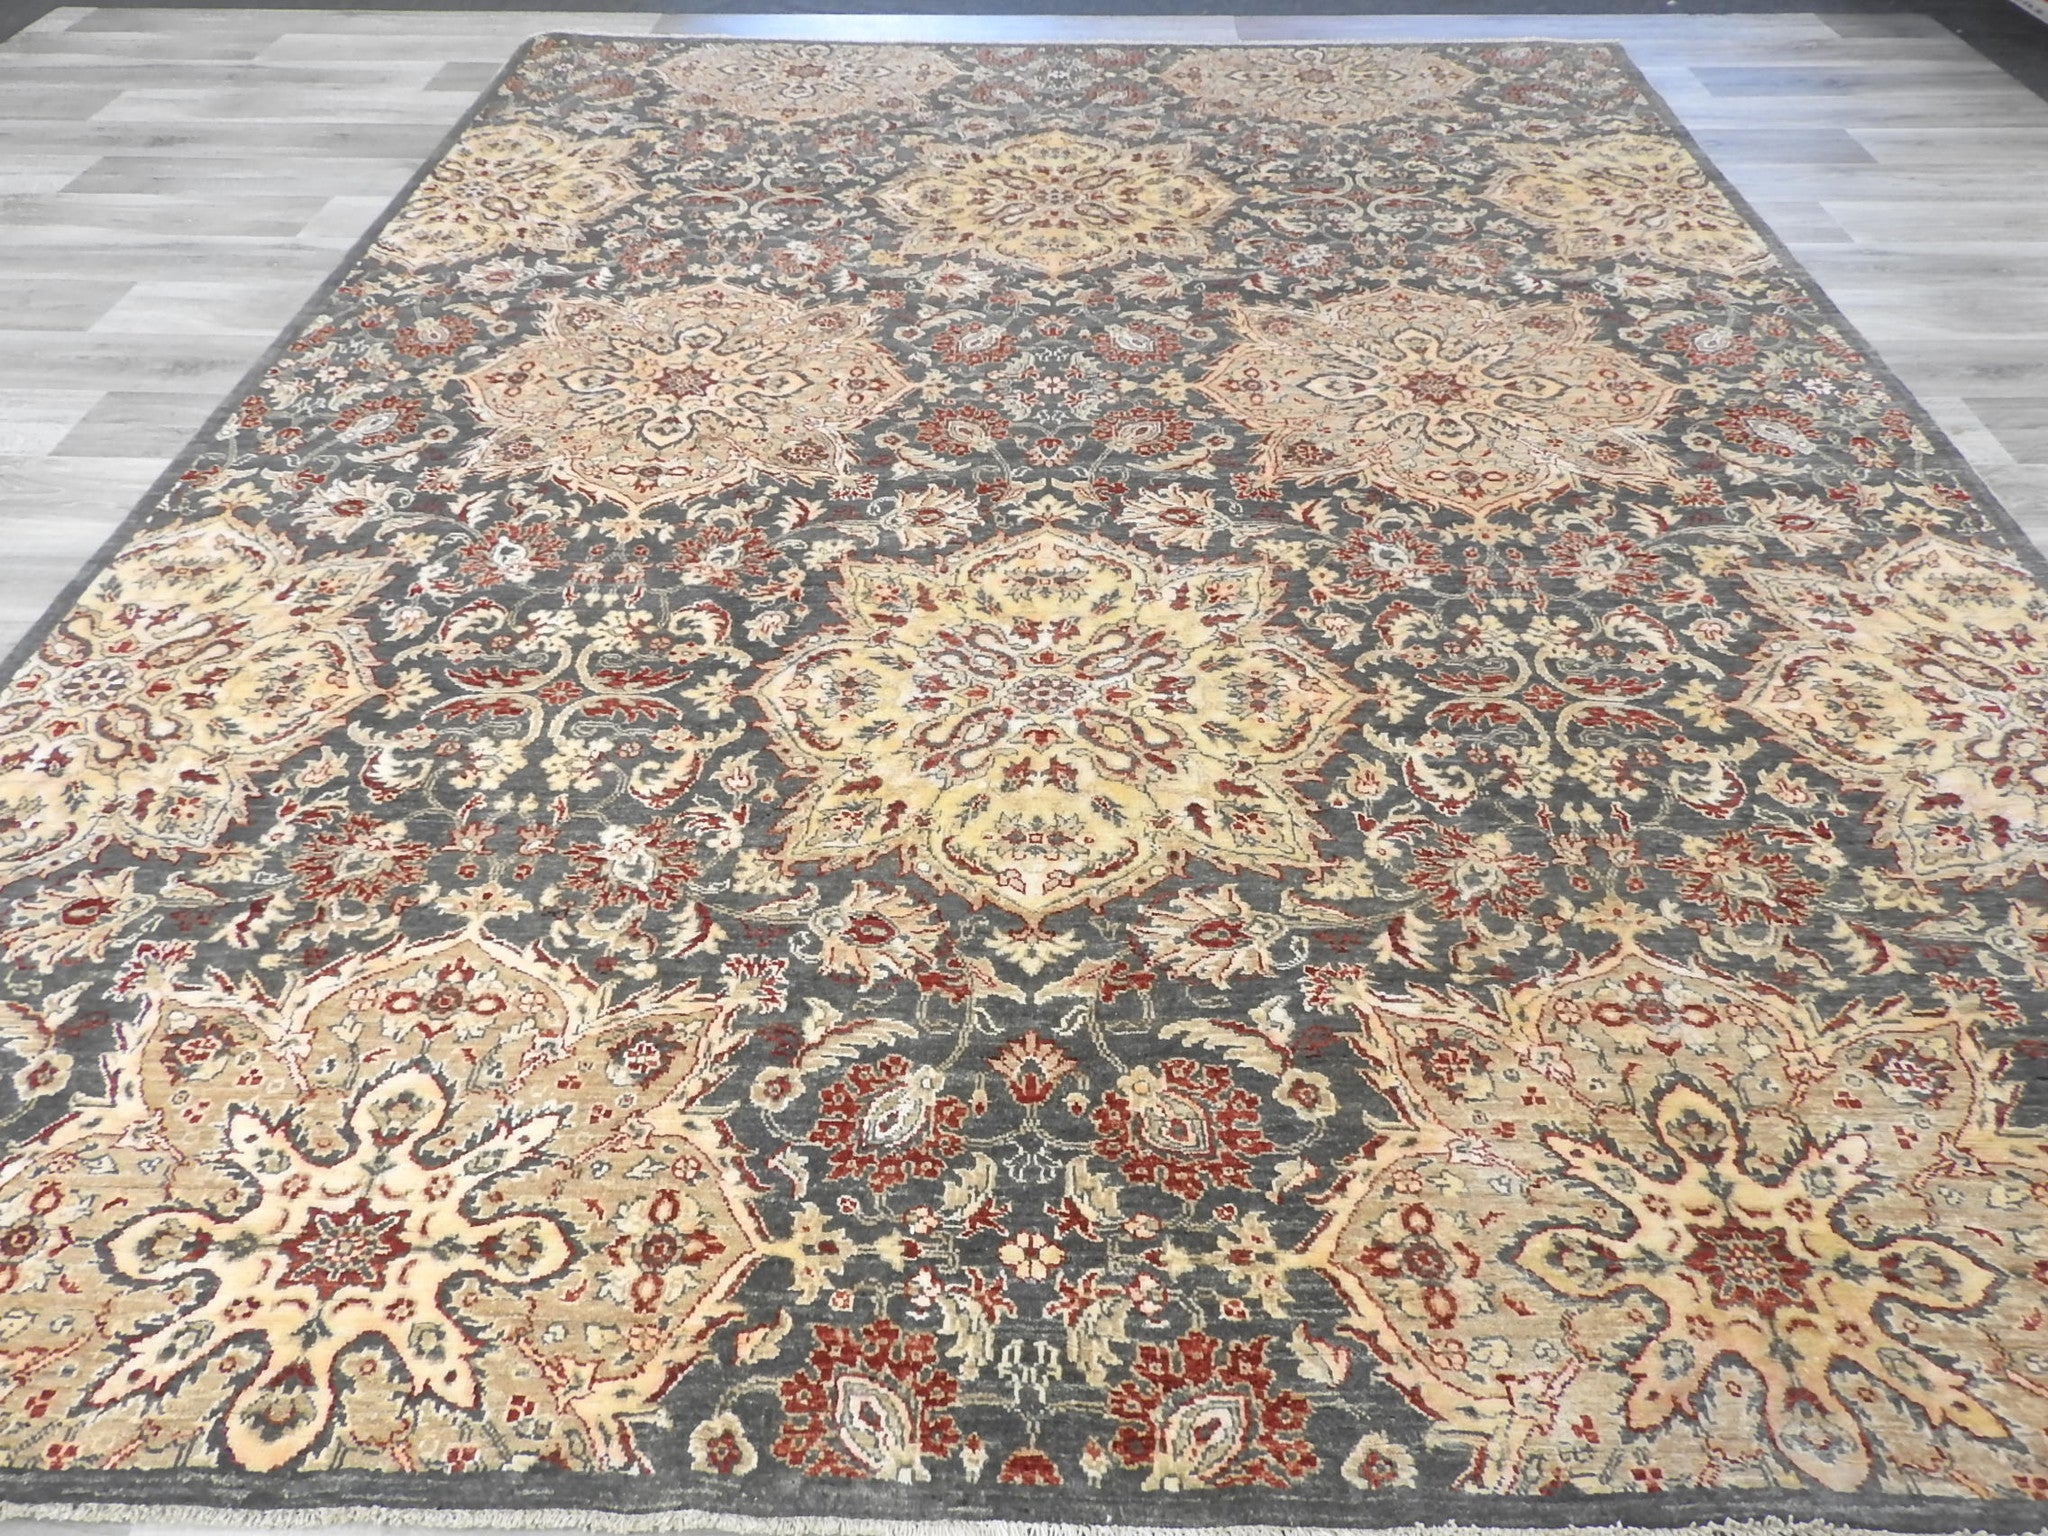 Afghan Hand Knotted Choubi Rug Size: 348 x 272cm